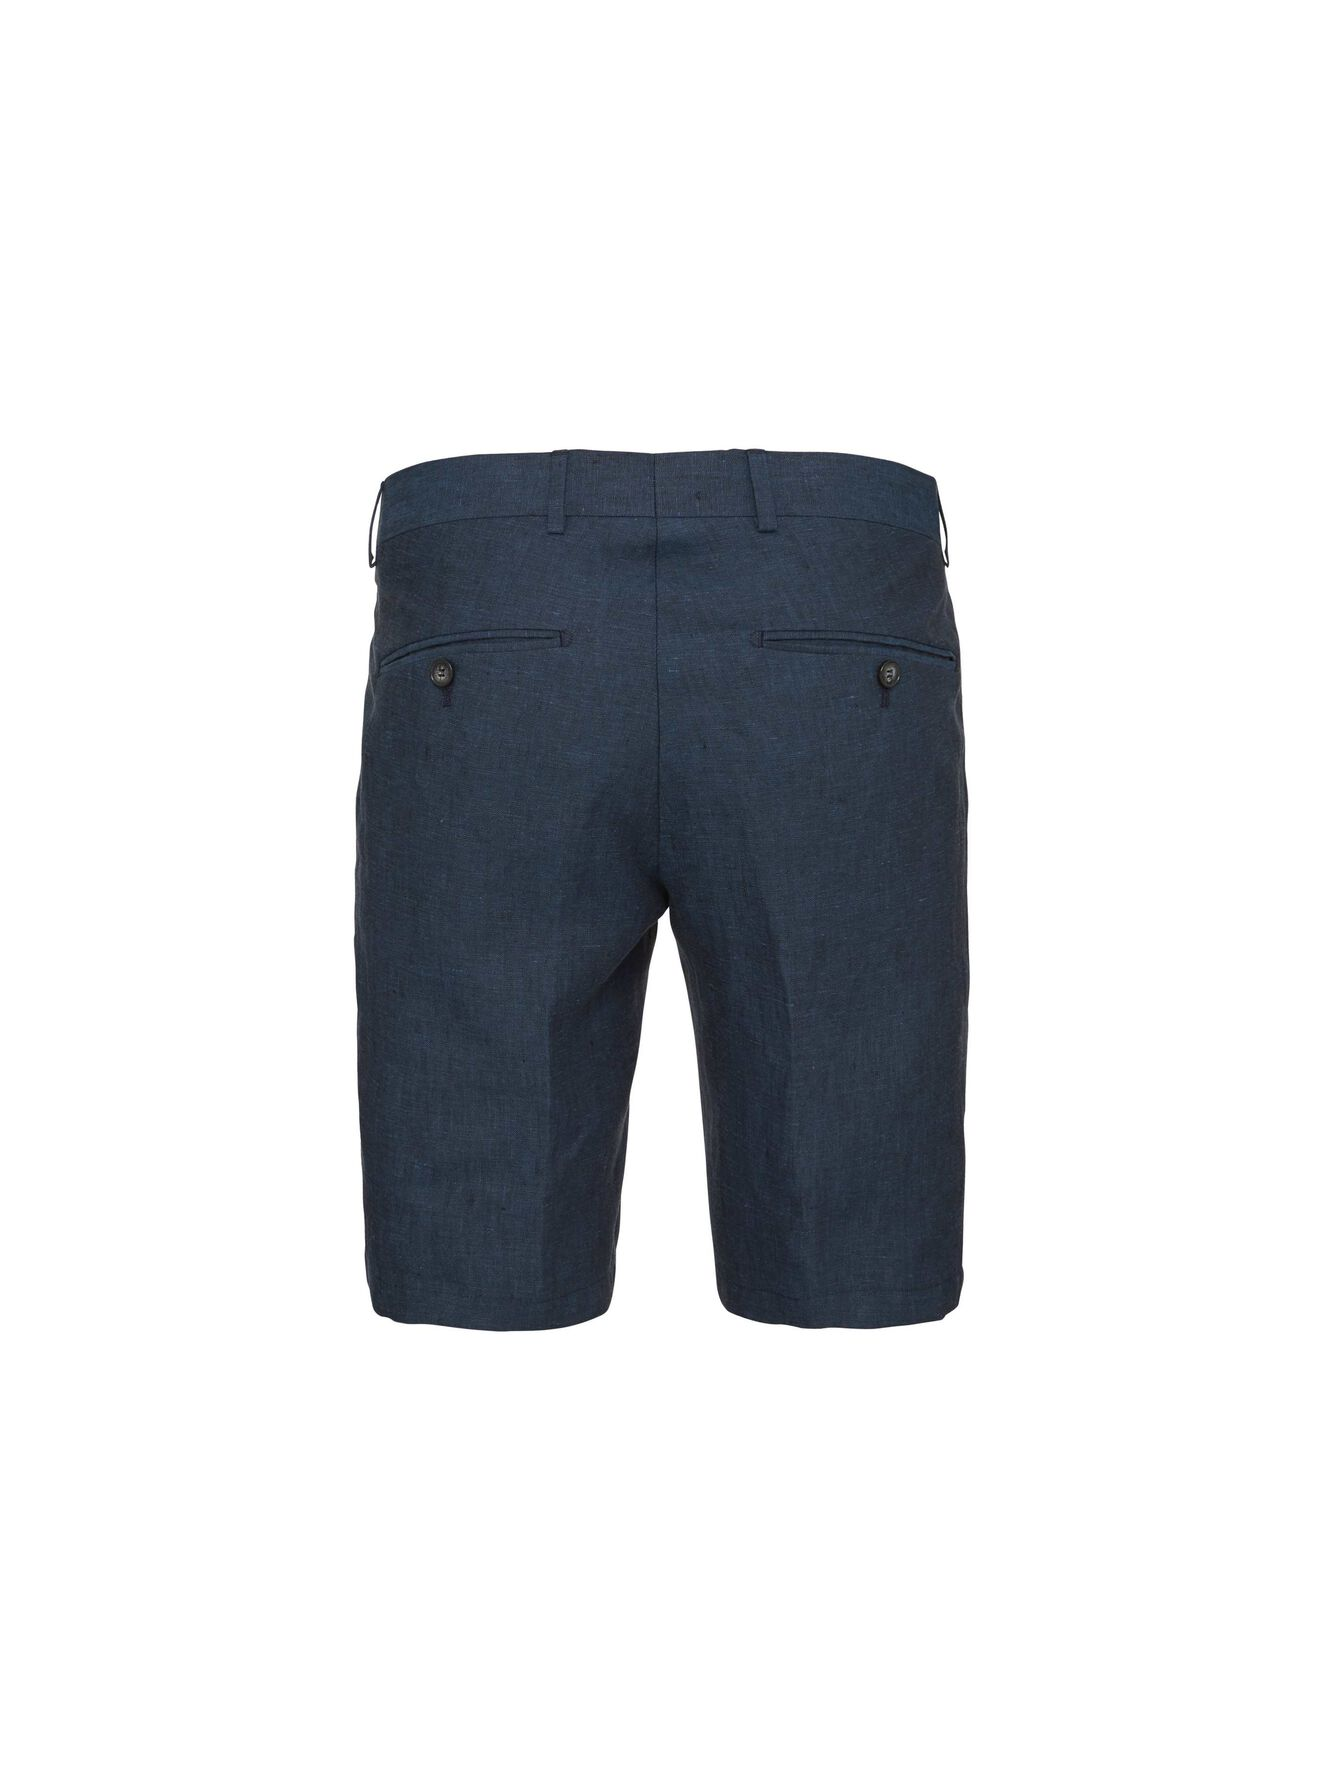 Hills 6 Shorts in Sky Captain from Tiger of Sweden